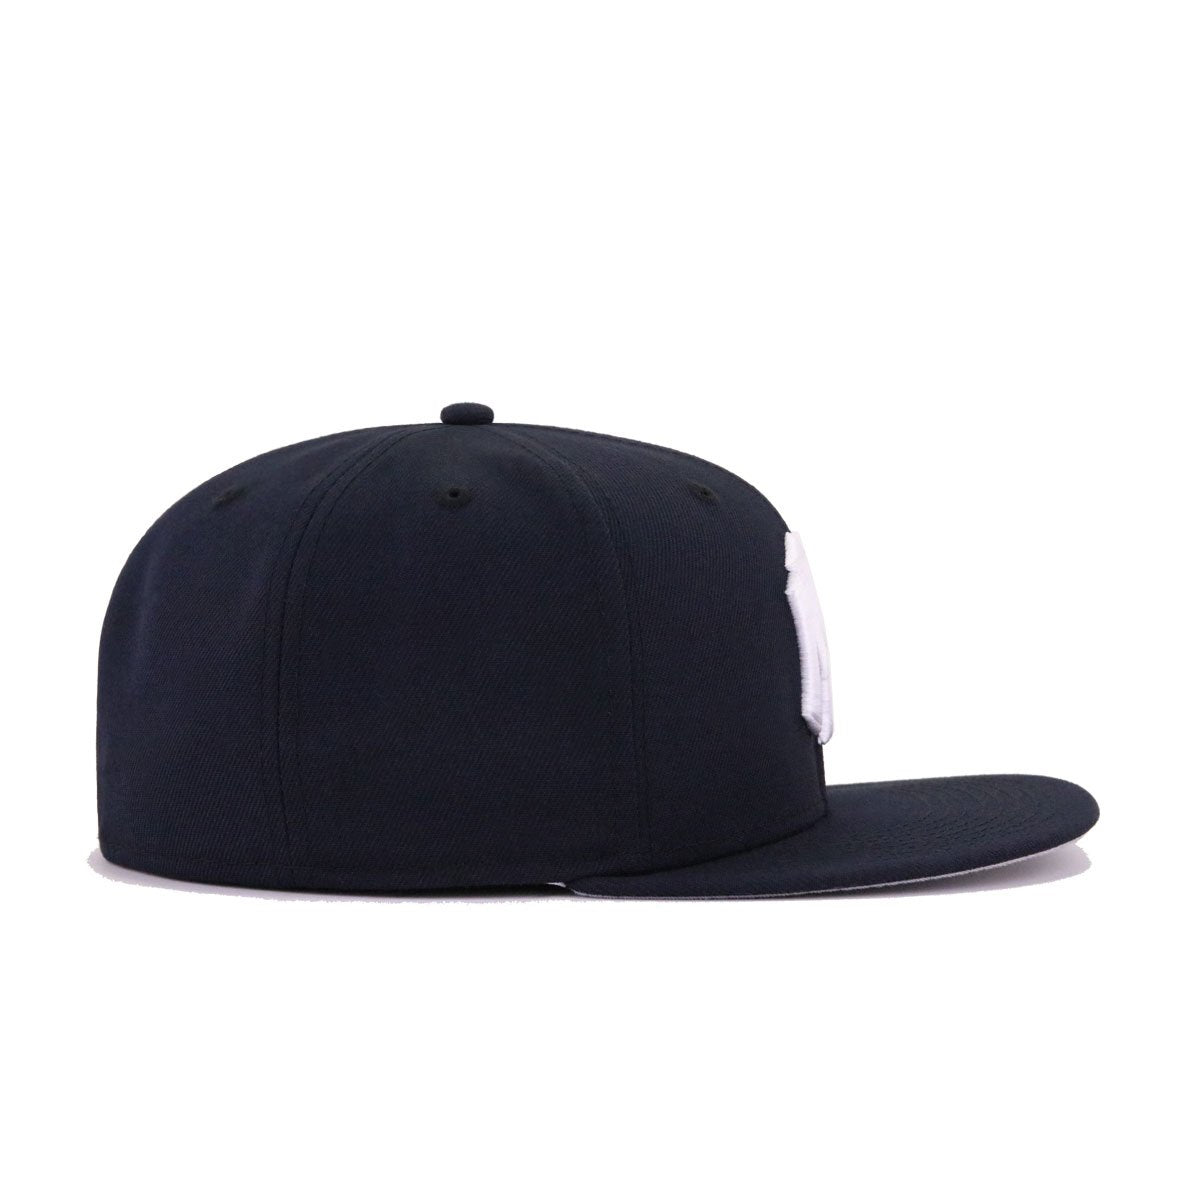 New York Yankees Navy 1915 Logo New Era 59Fifty Fitted